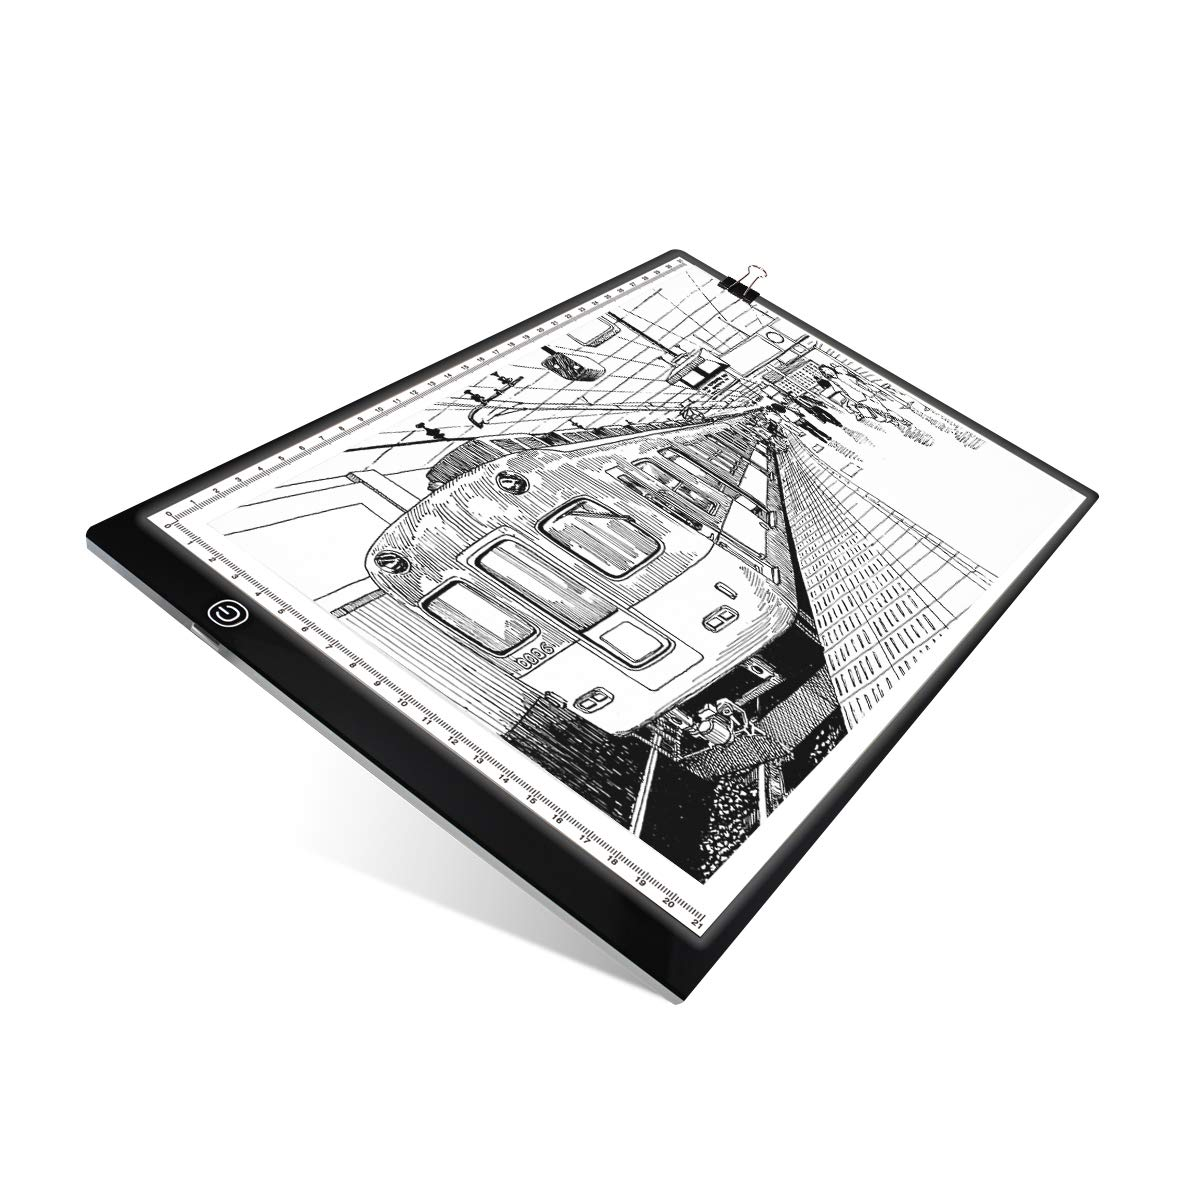 UKON A4 LED Light Box Drawing Light Pad Art Tracing Xray Light Board for Tracer Kids Artists Diamond Painting with Dimmable Brightness for Embroidery Sketching Animation Stenciling … (A4 Light Box) 4336950949